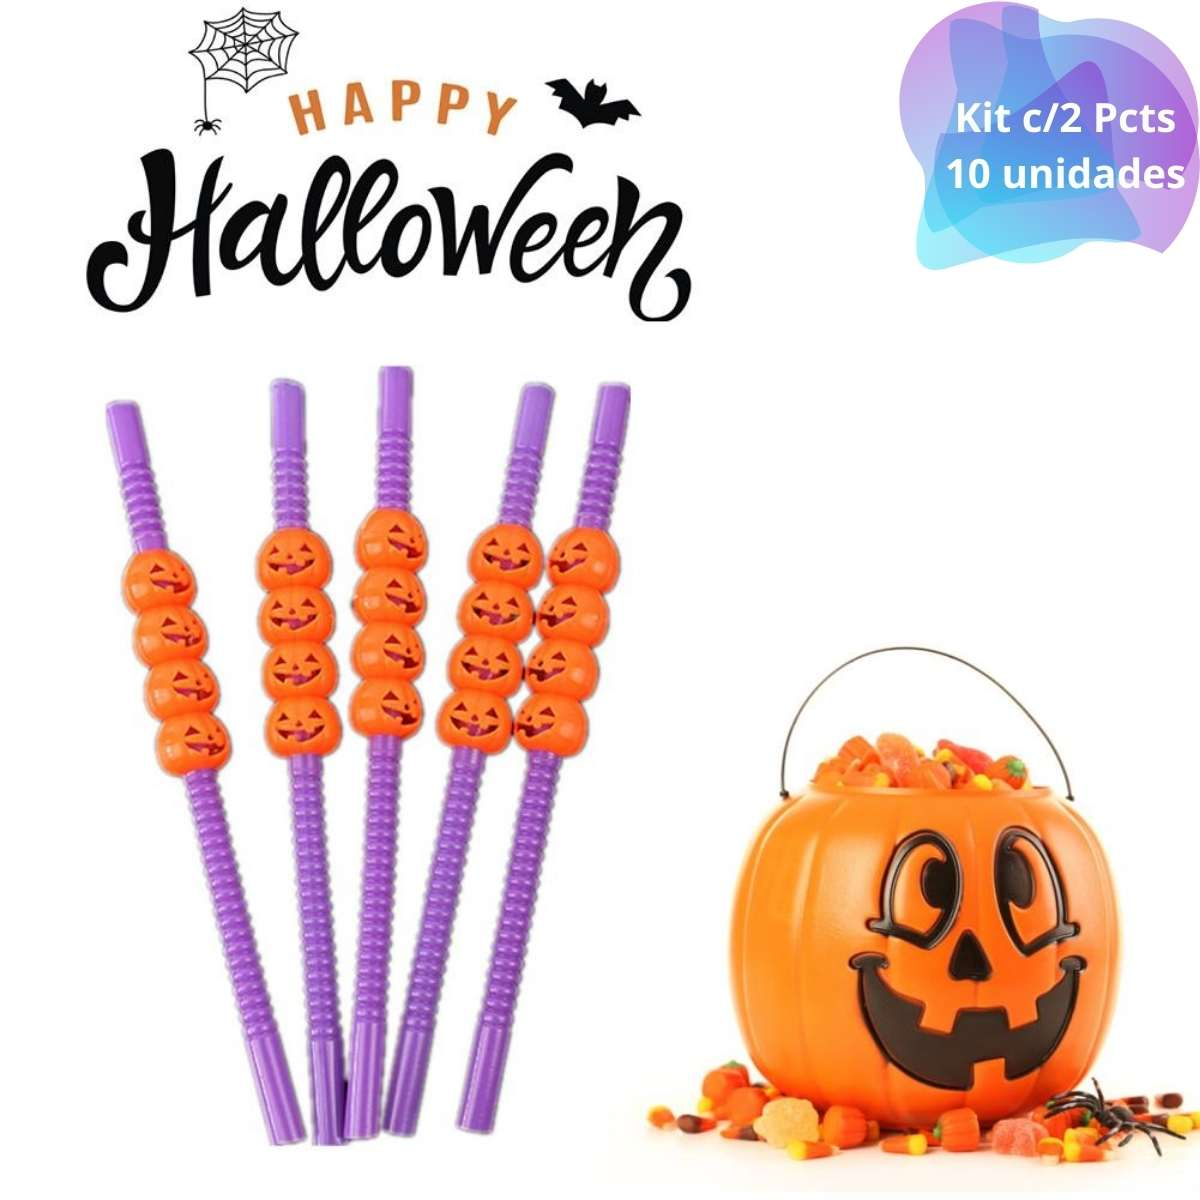 Canudo Halloween Kit c/2 Pcts (total 10 unidades)